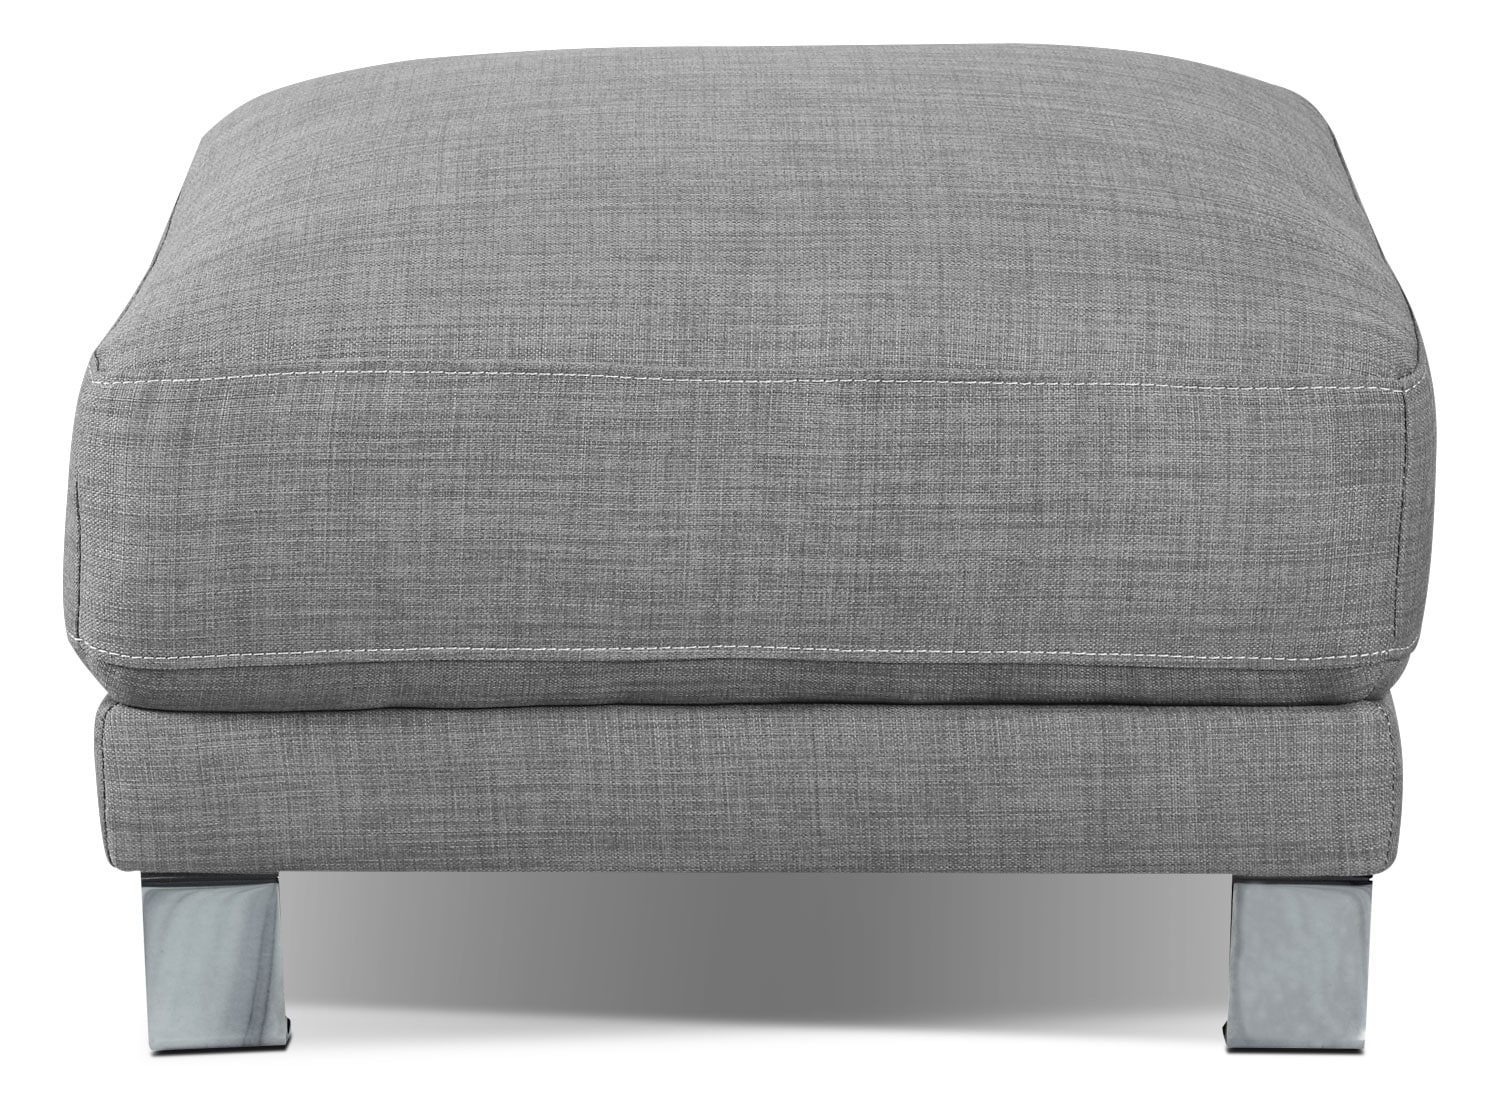 Living Room Furniture - Emilee Fabric Ottoman - Ash